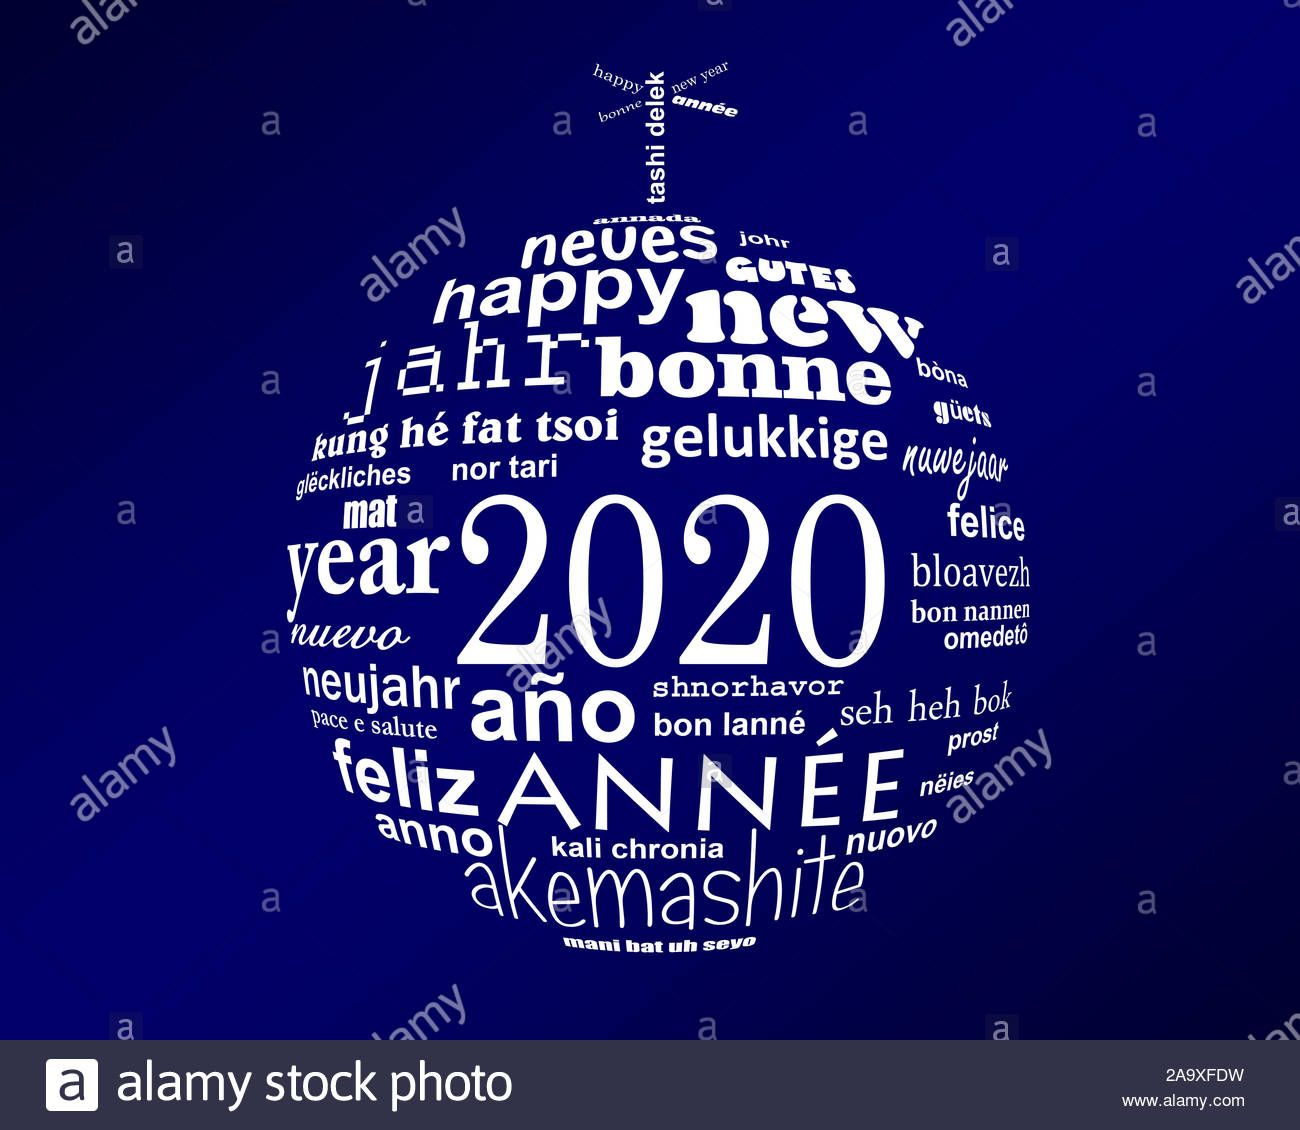 Download this stock image 2020 new year white and blue